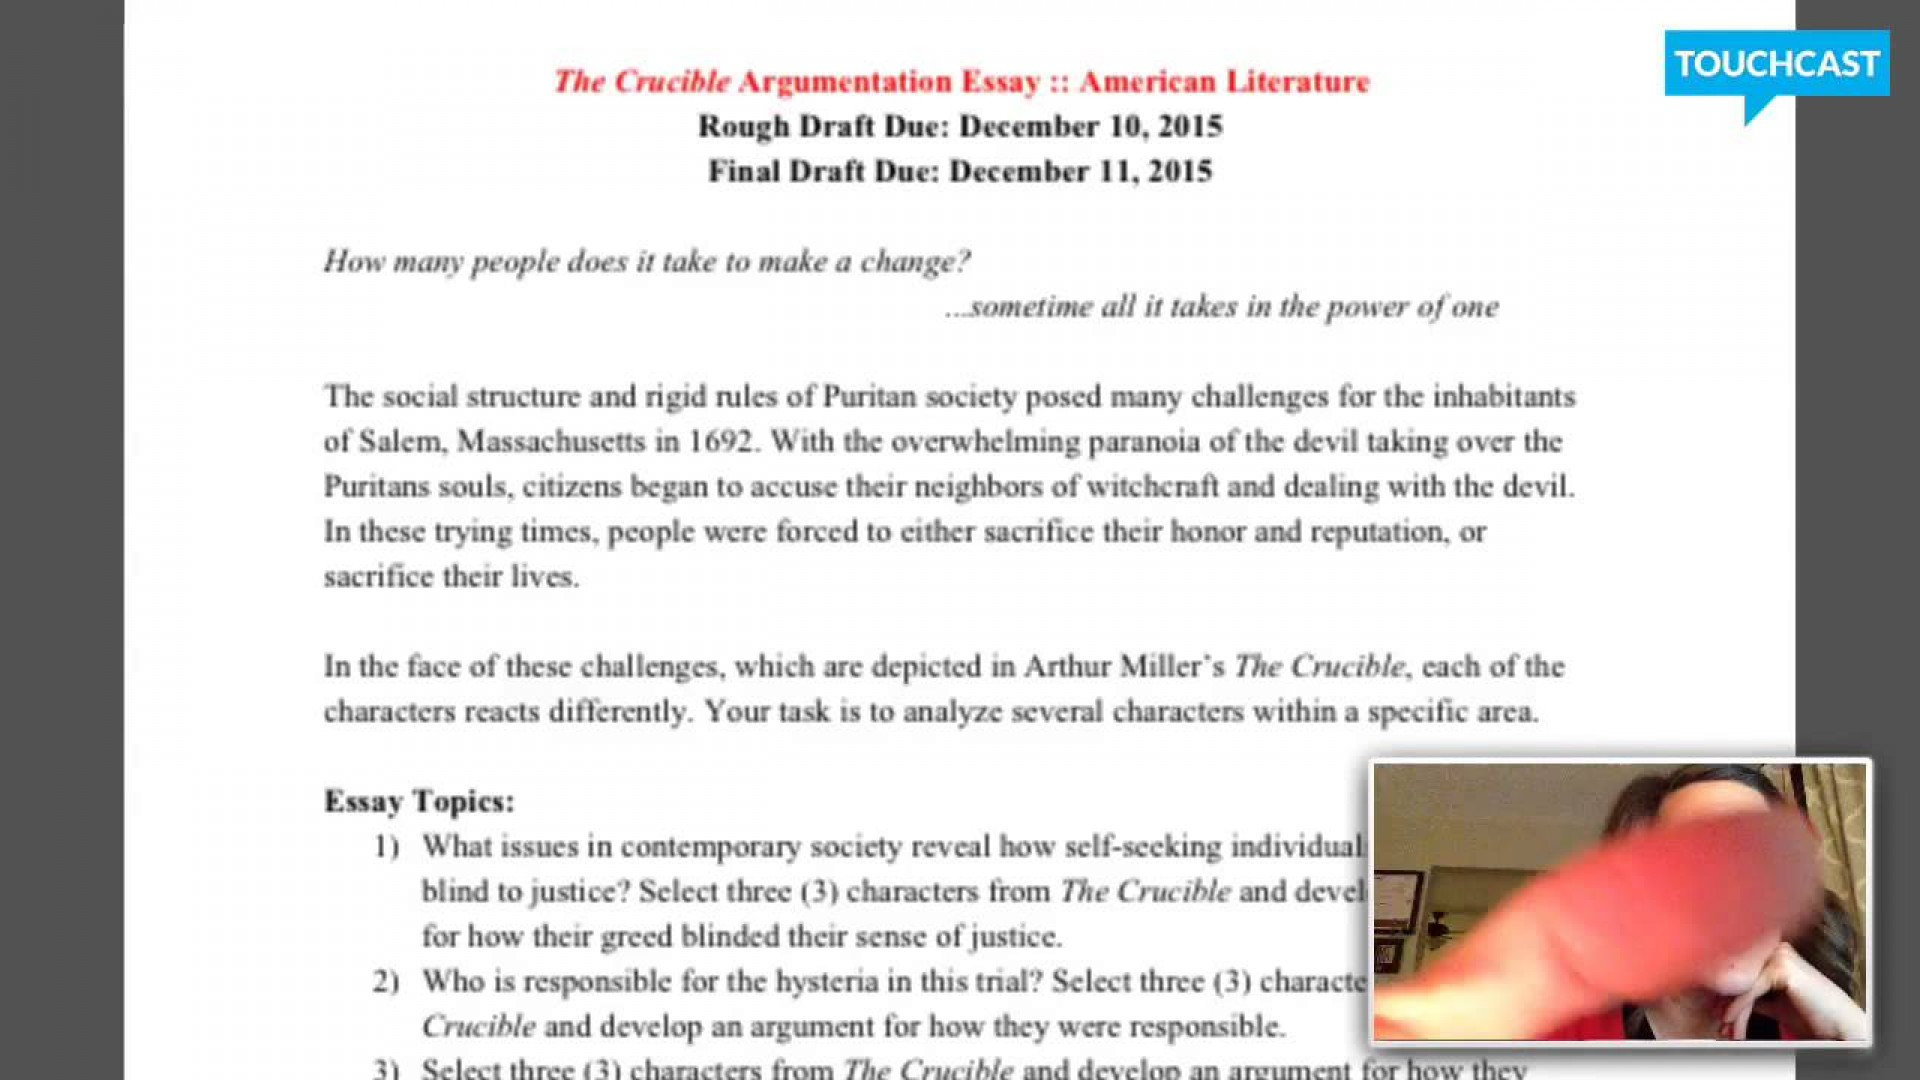 011 Essay On The Crucible Example Phenomenal And Red Scare Reputation Questions For Act 1 1920